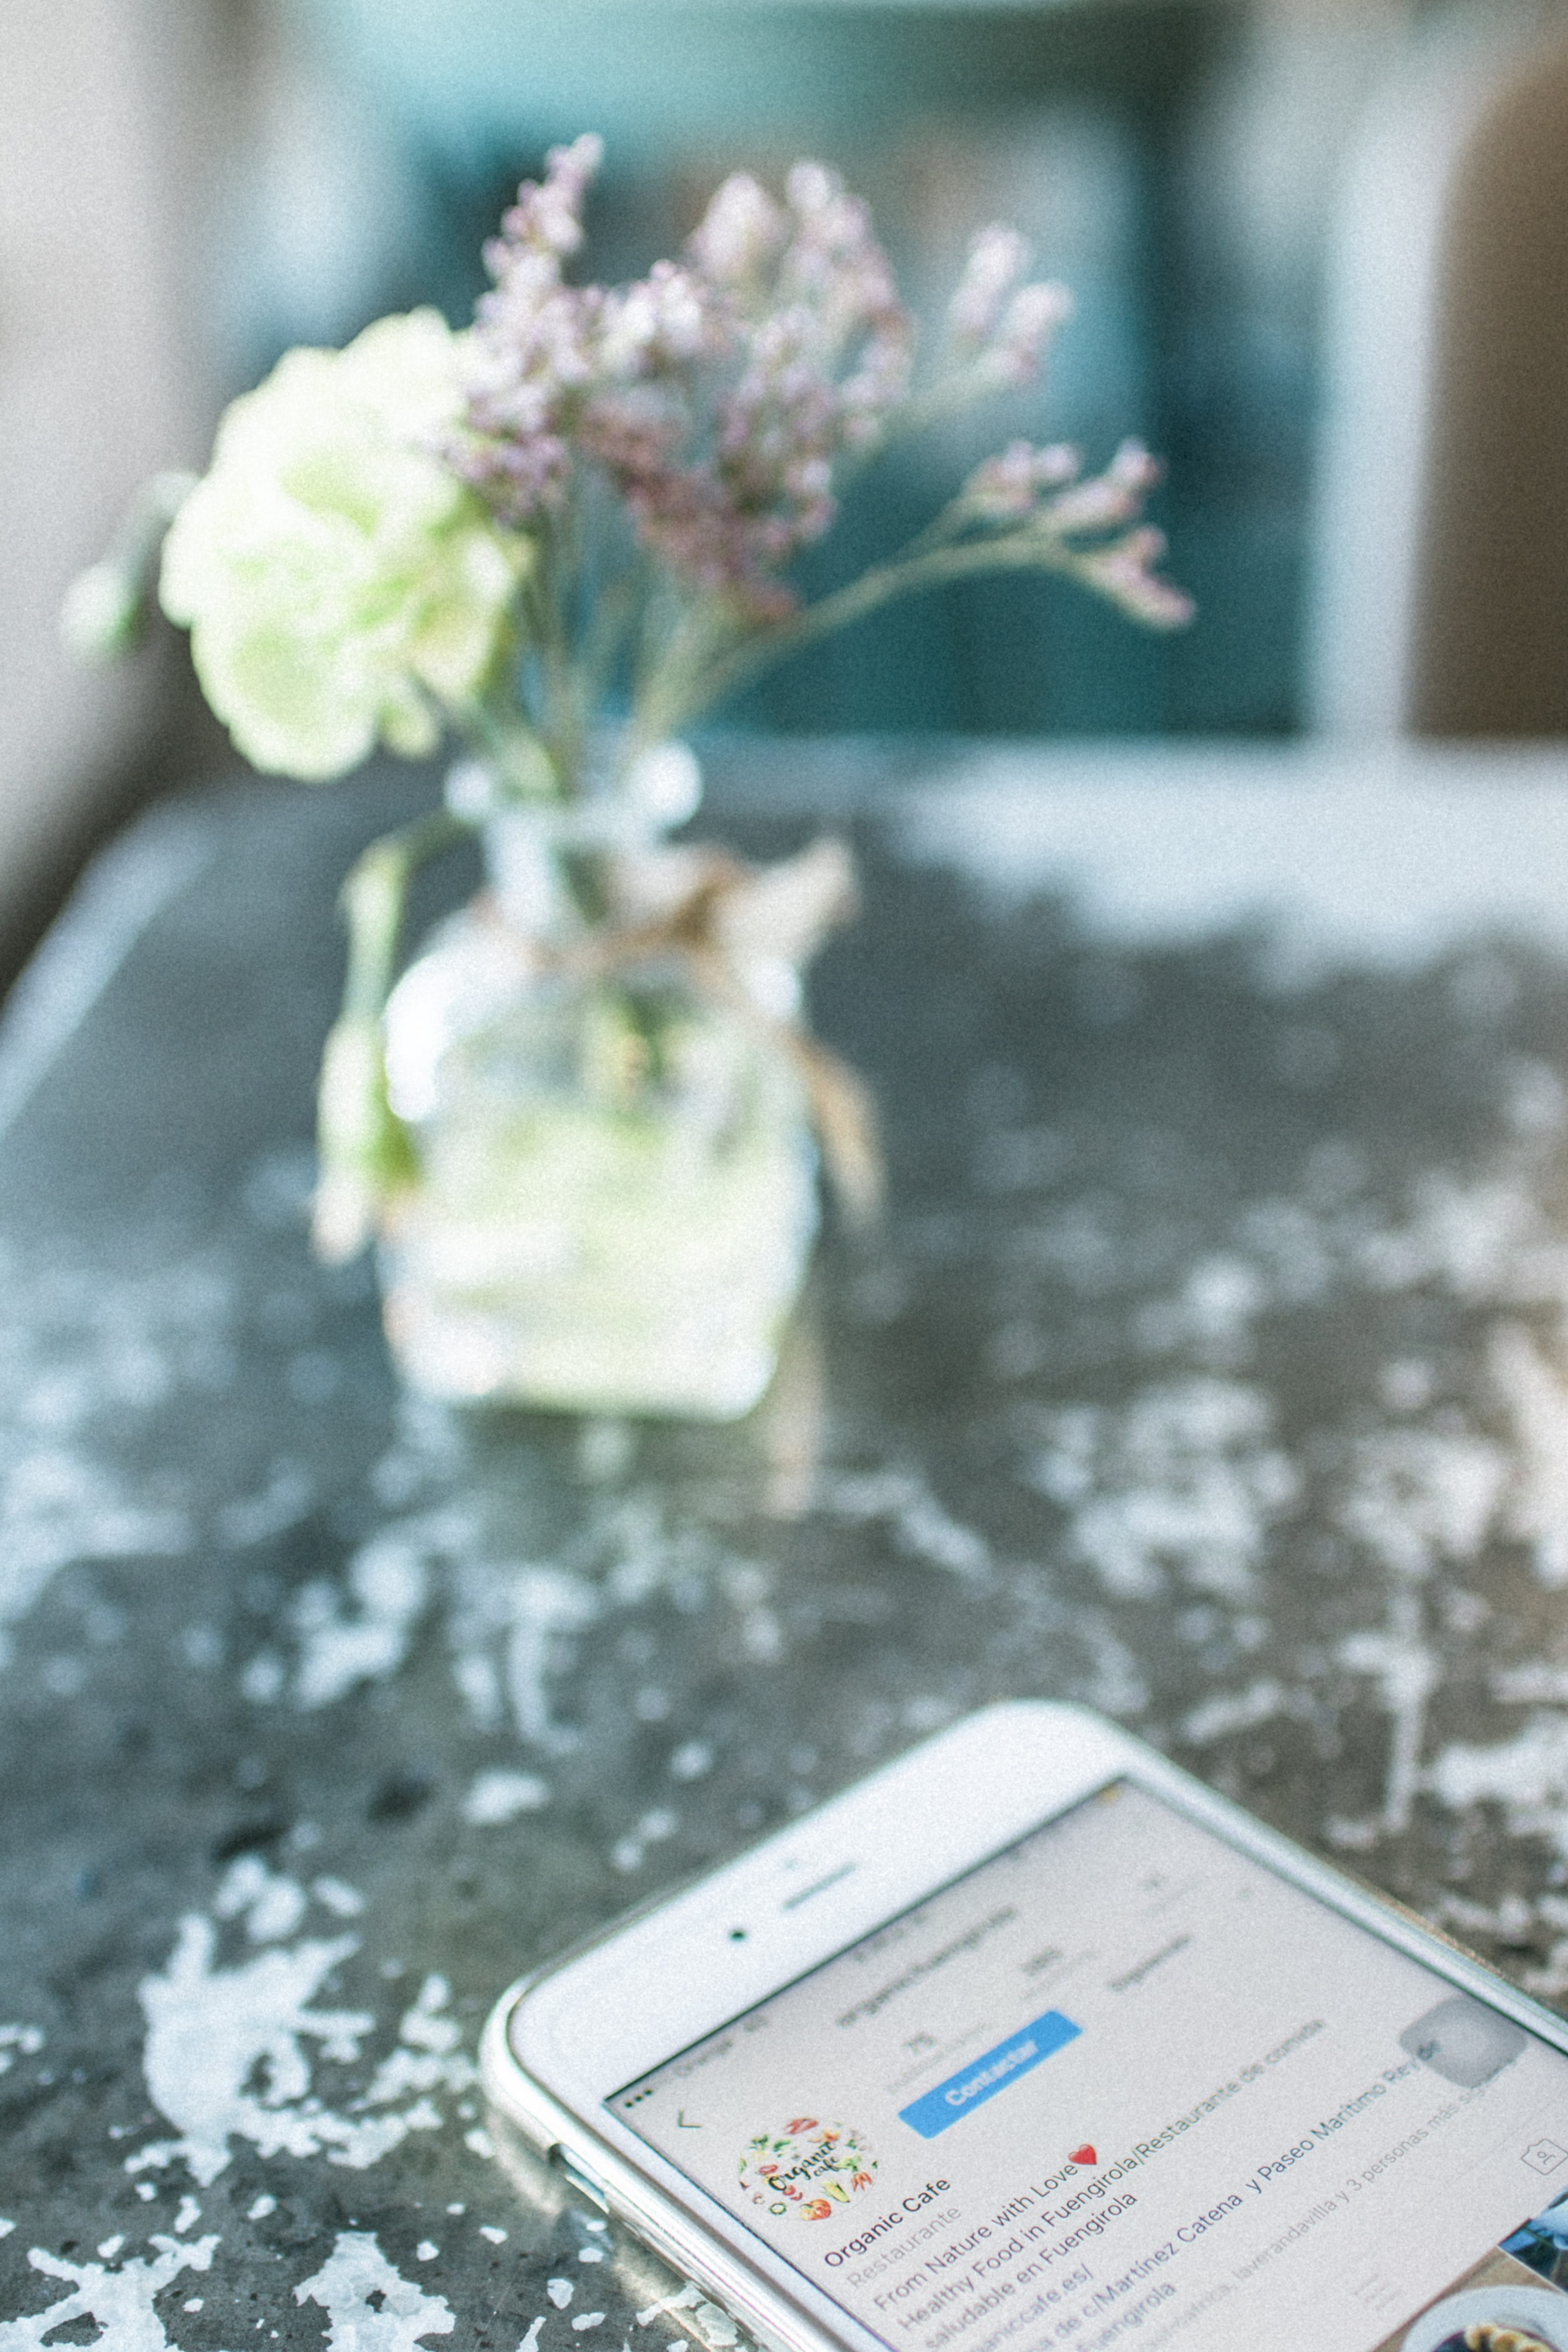 Selective Focus Photography of Smartphone on Table